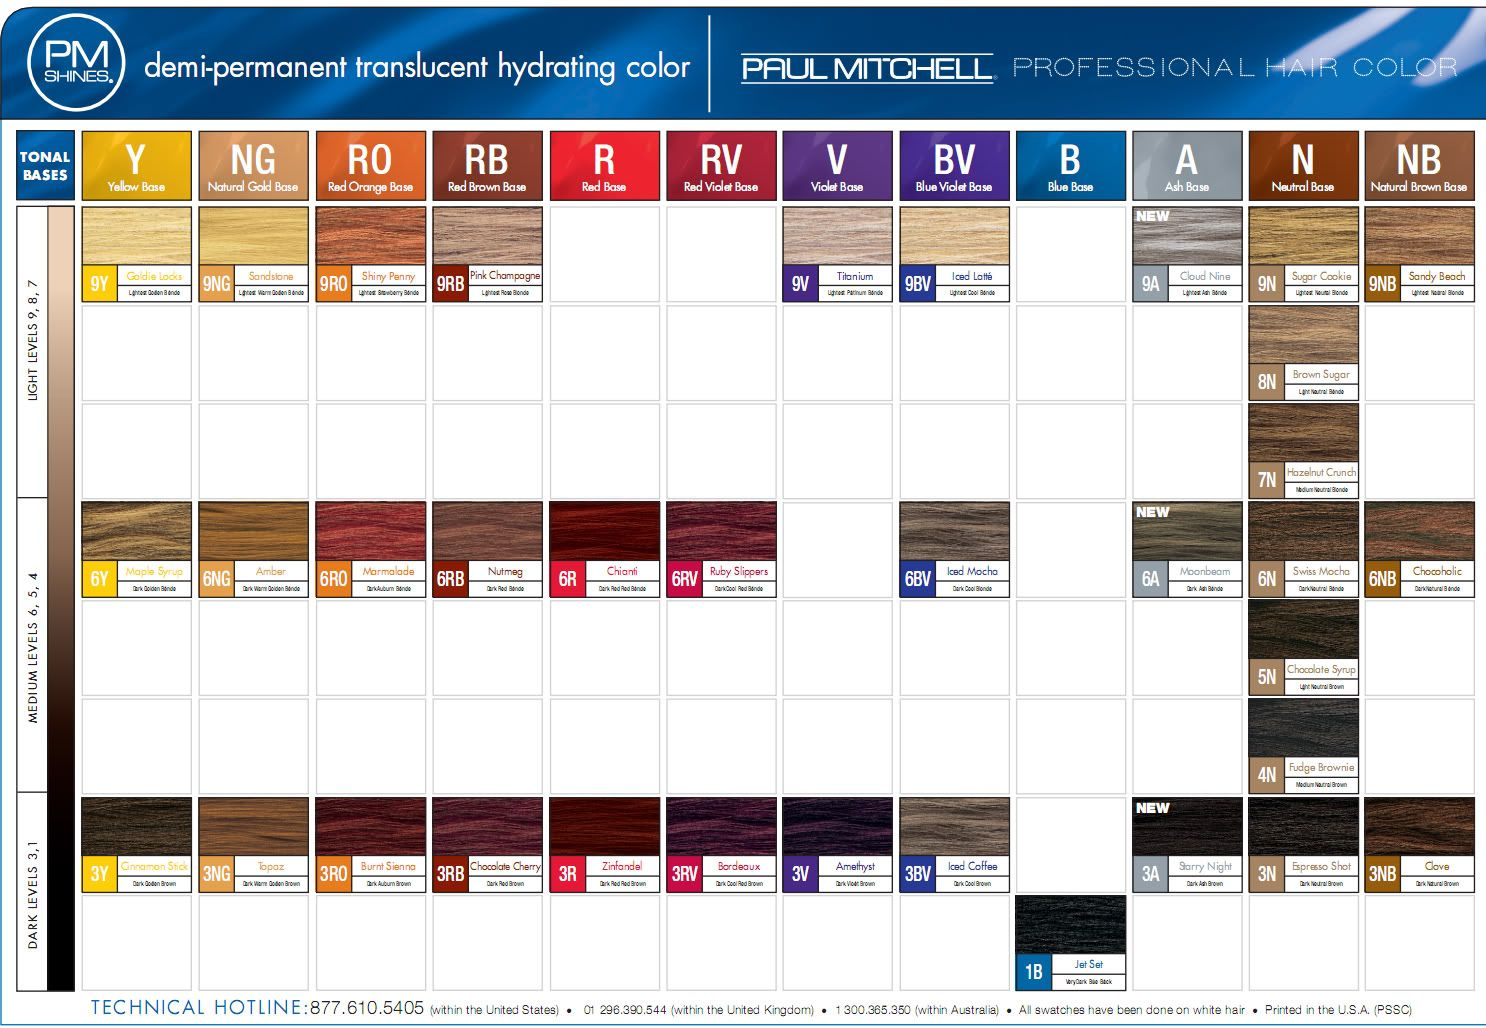 Paul Mitchell Hair Color Chart For Your Hair